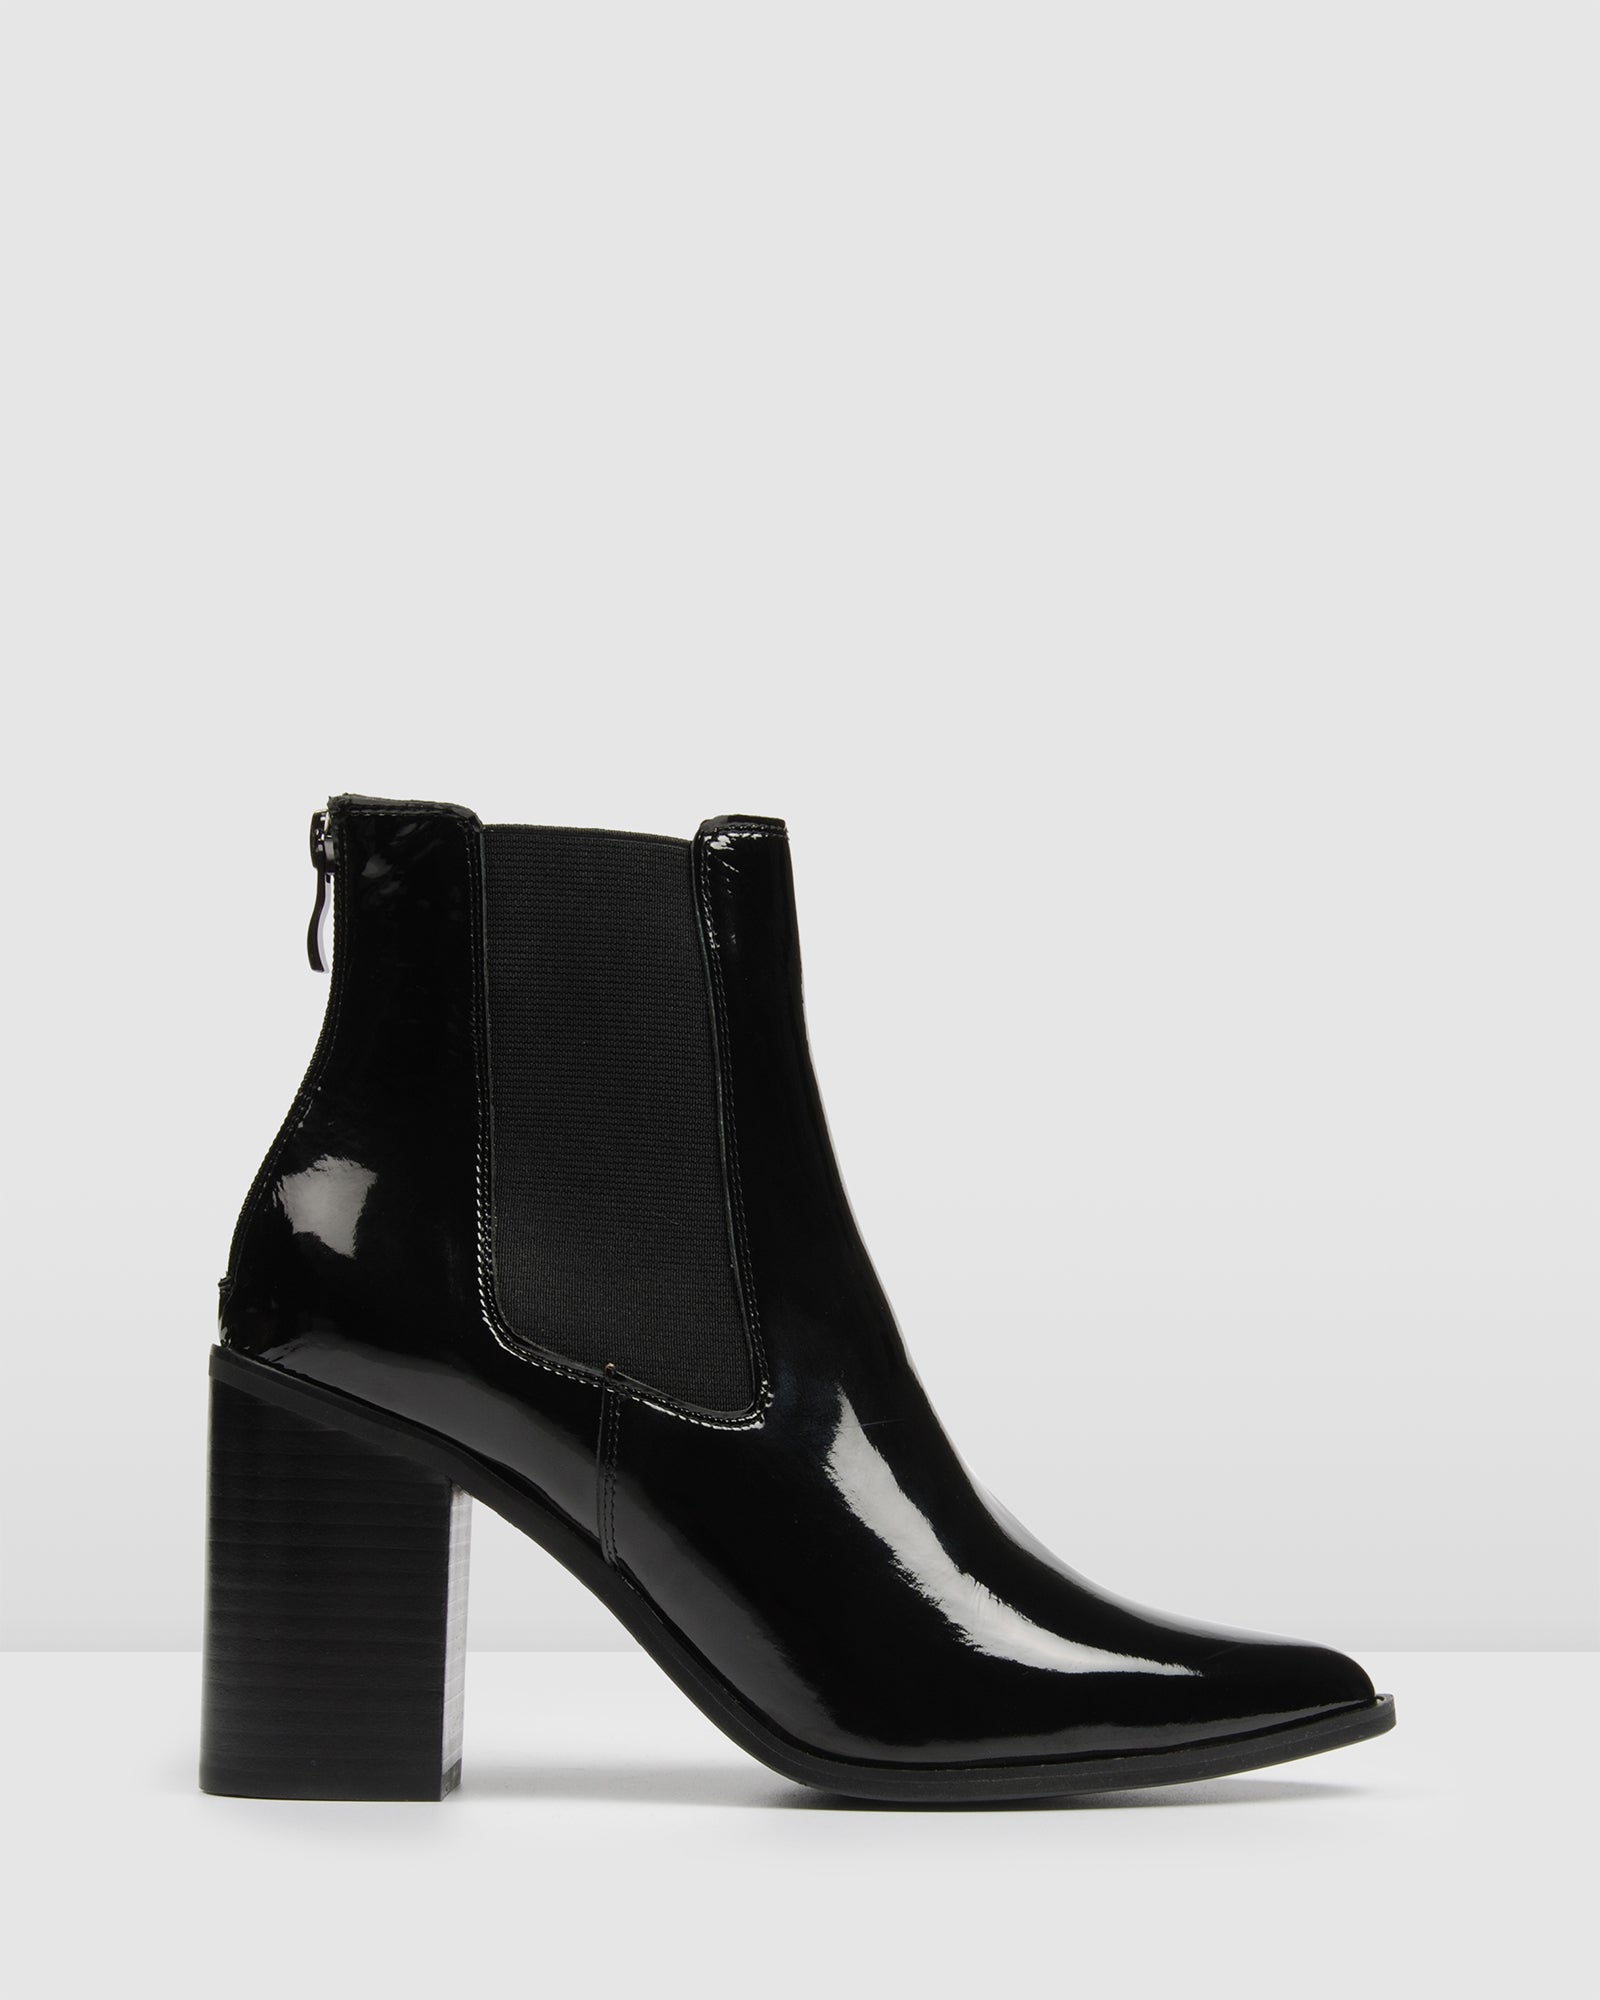 c39817a65bb LOVER HIGH ANKLE BOOTS BLACK PATENT